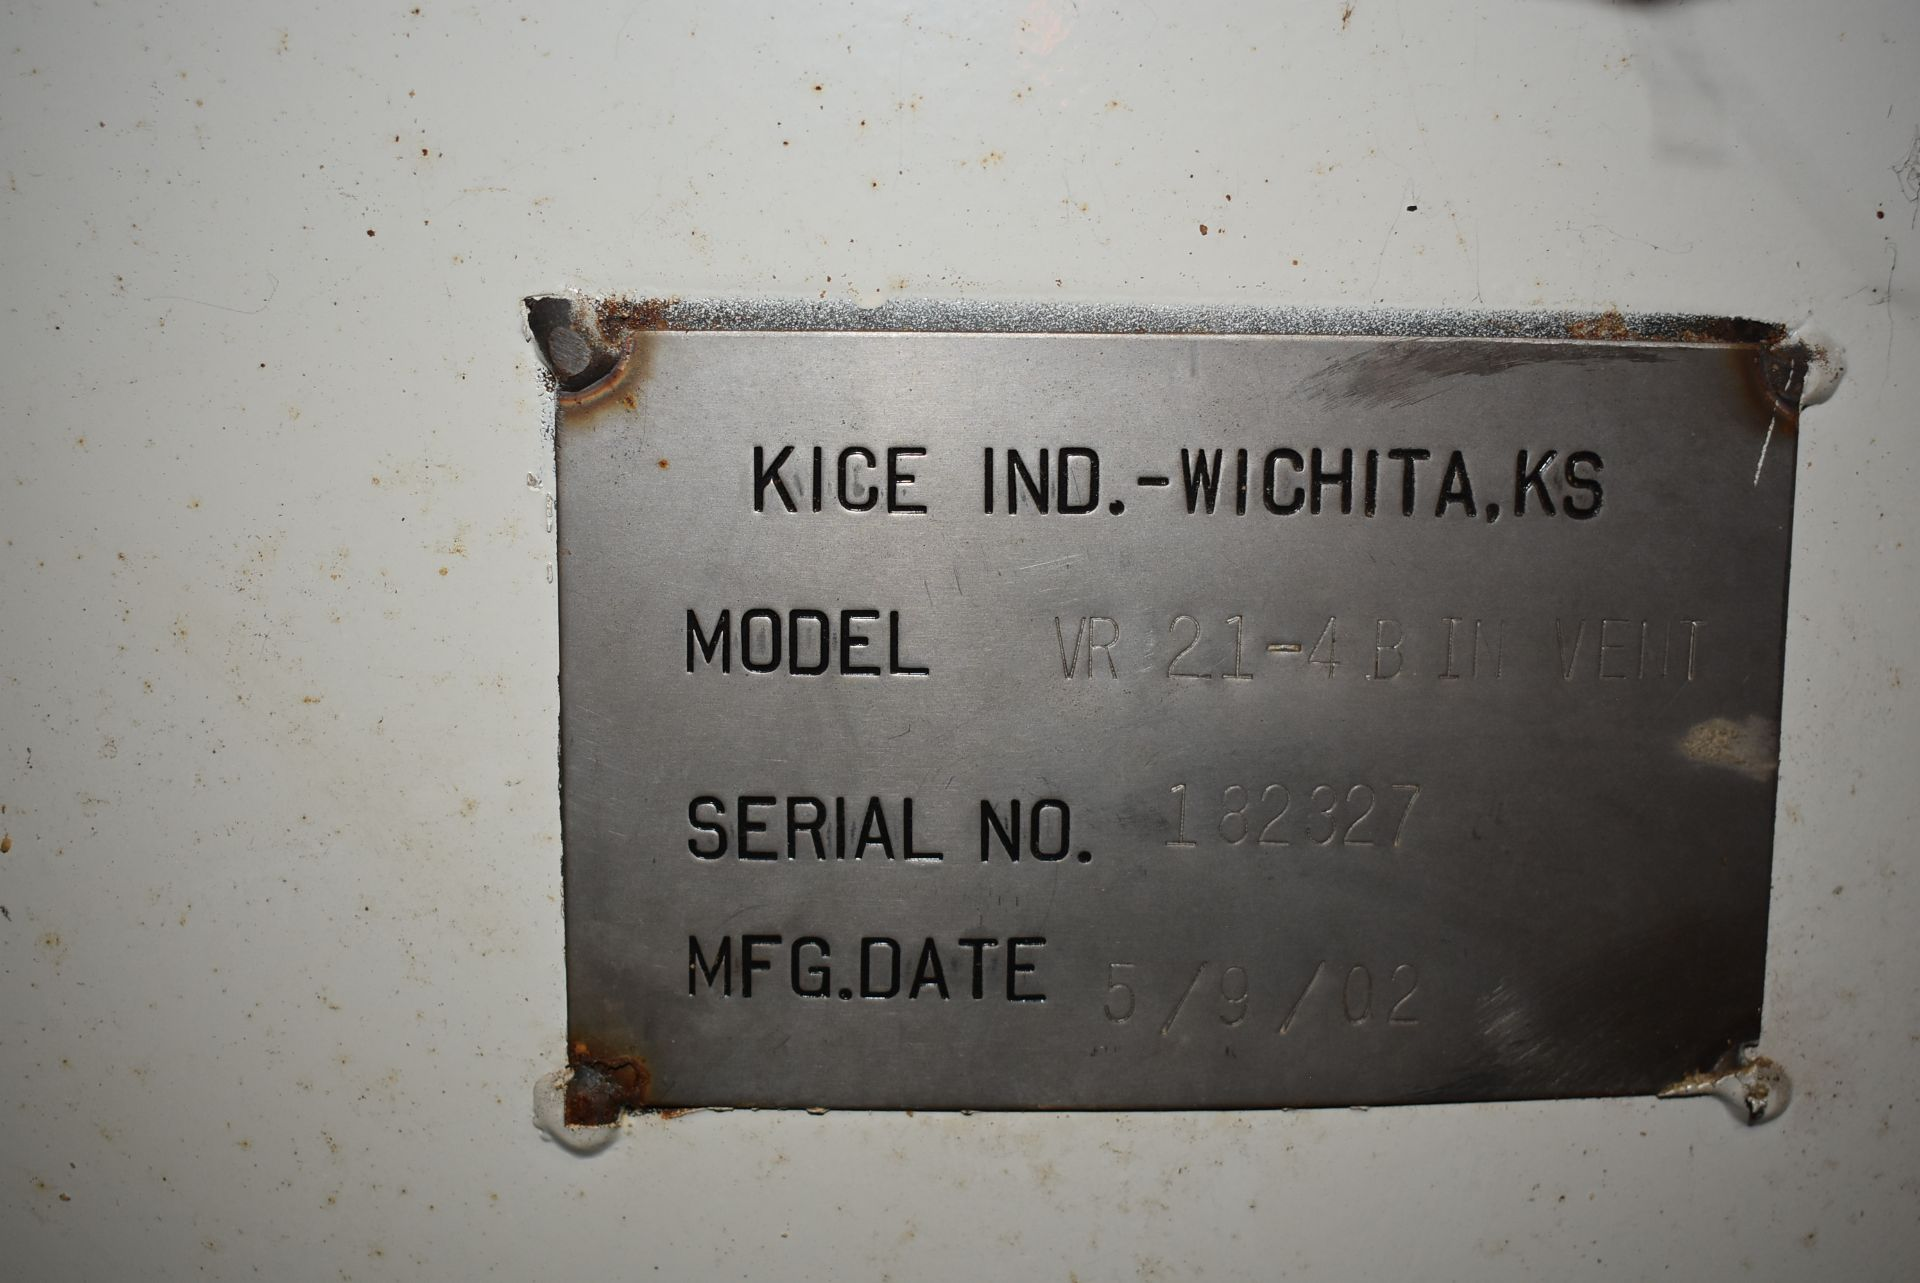 Kice Model #VR-214BINVENT Dust Collection System - Image 2 of 3